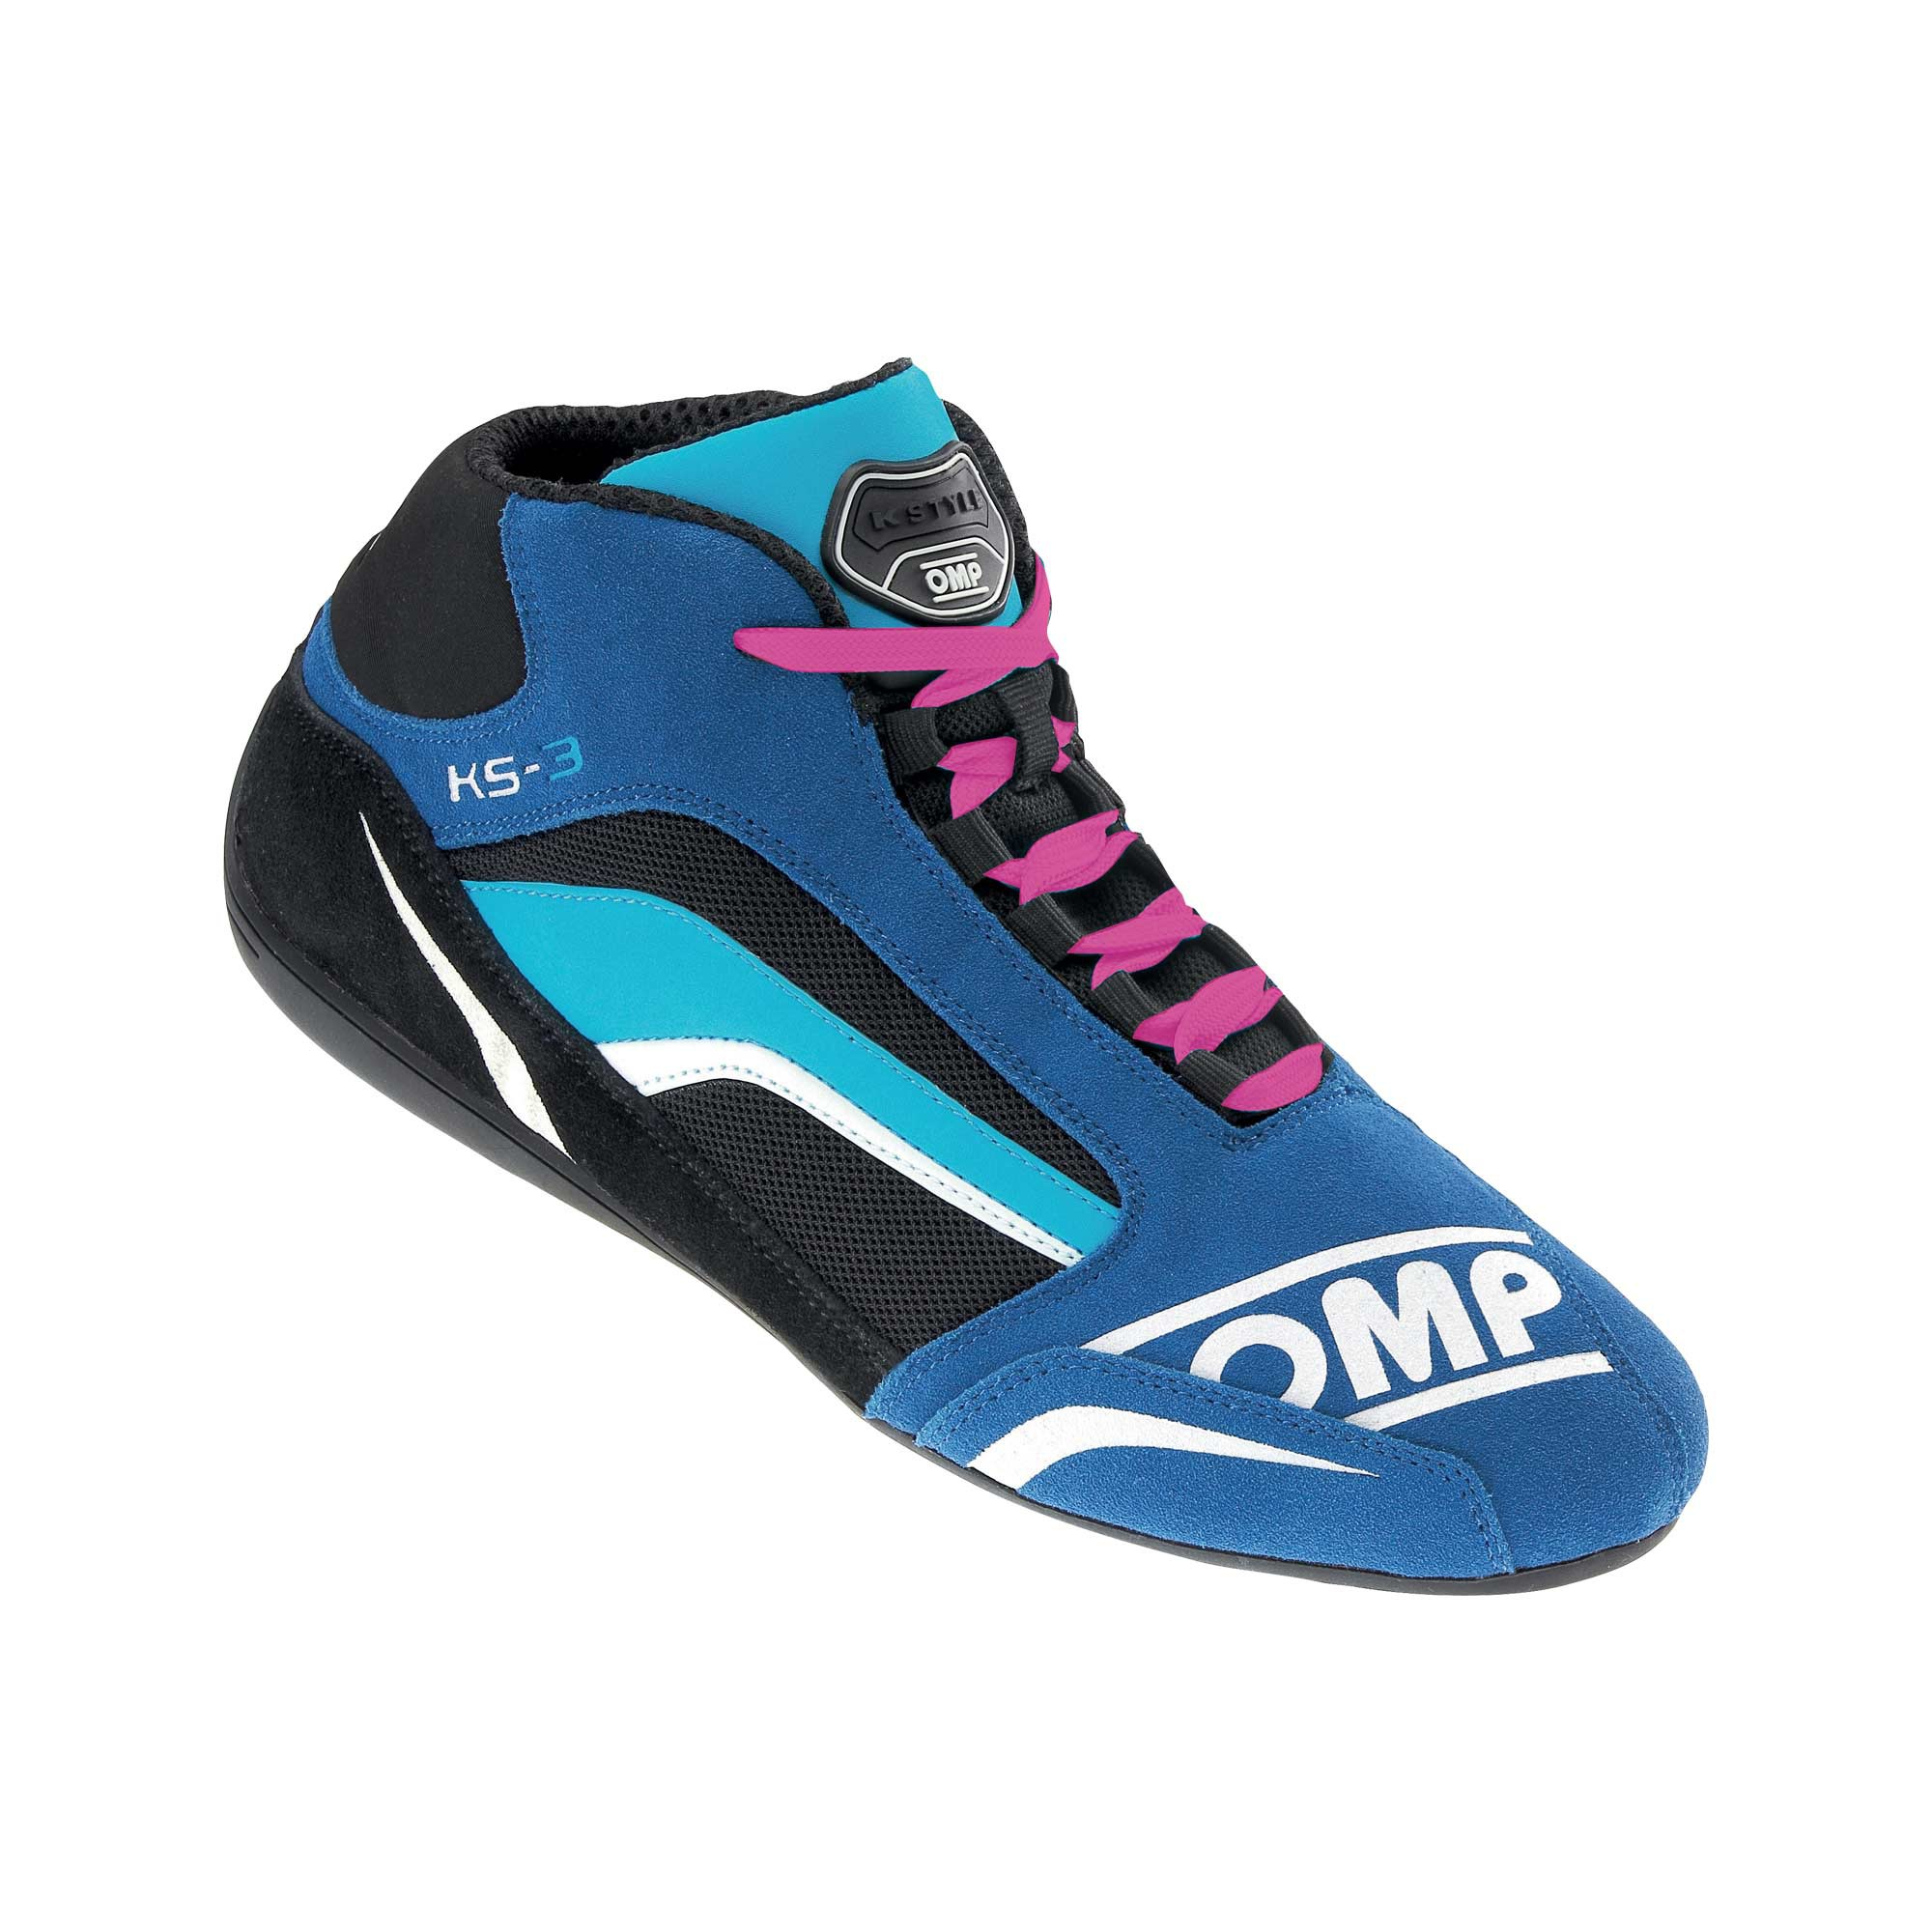 OMP KS-3 Shoe